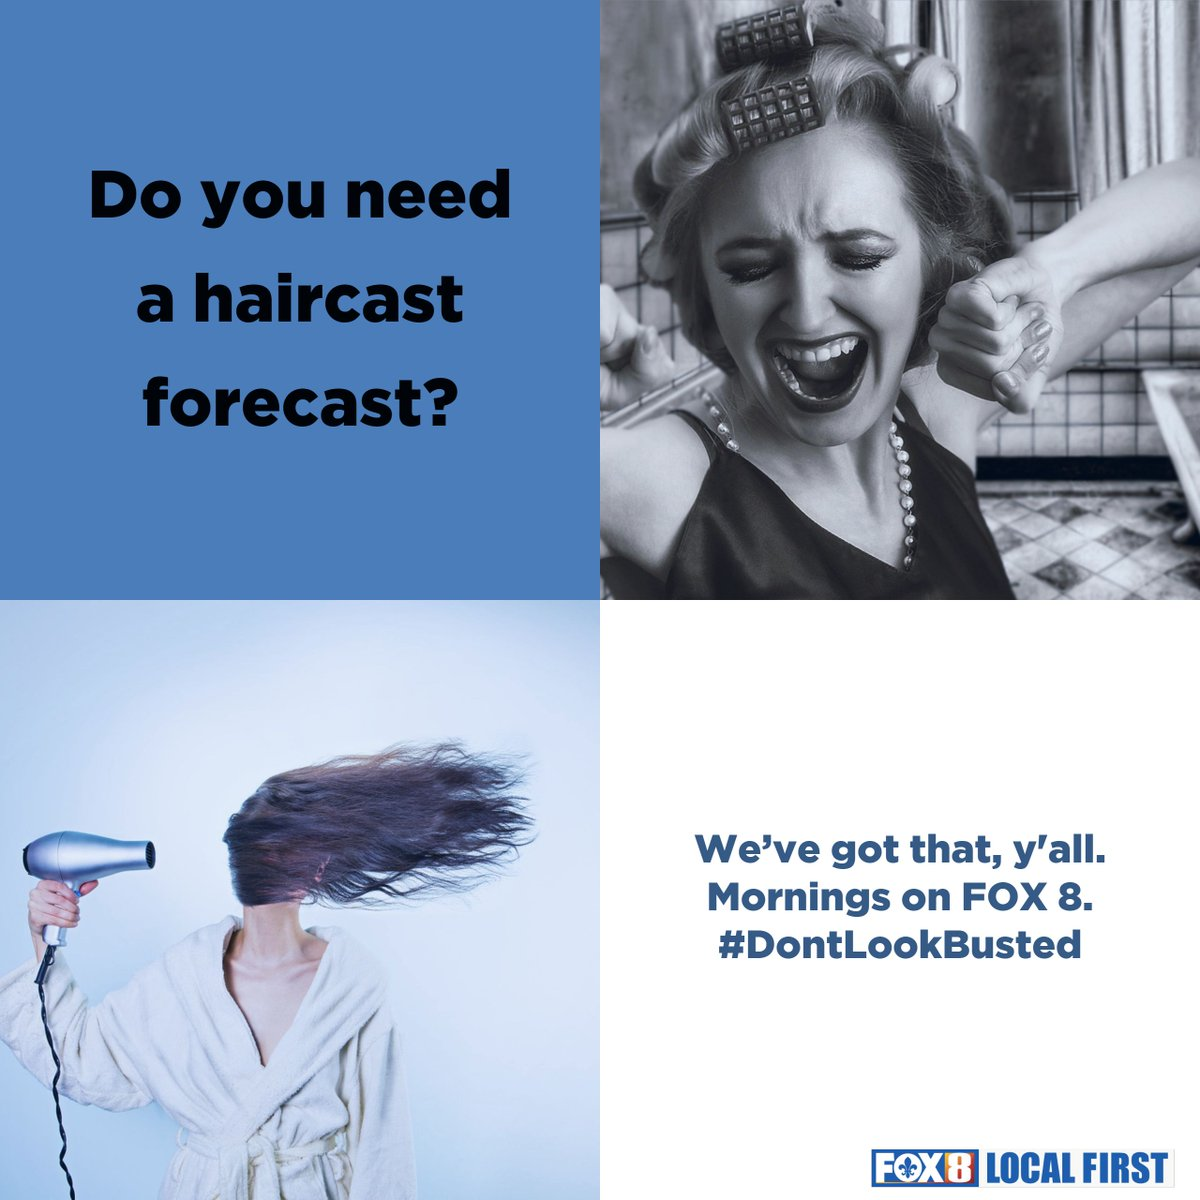 We are the only station that provides a morning haircast... that's right a weather forecast for your hair. You're welcome.   Watch Meteorologist Shelby Latino on the FOX 8 Morning Edition. Weekdays from 4:30-9 AM. https://t.co/FxzDblknZx